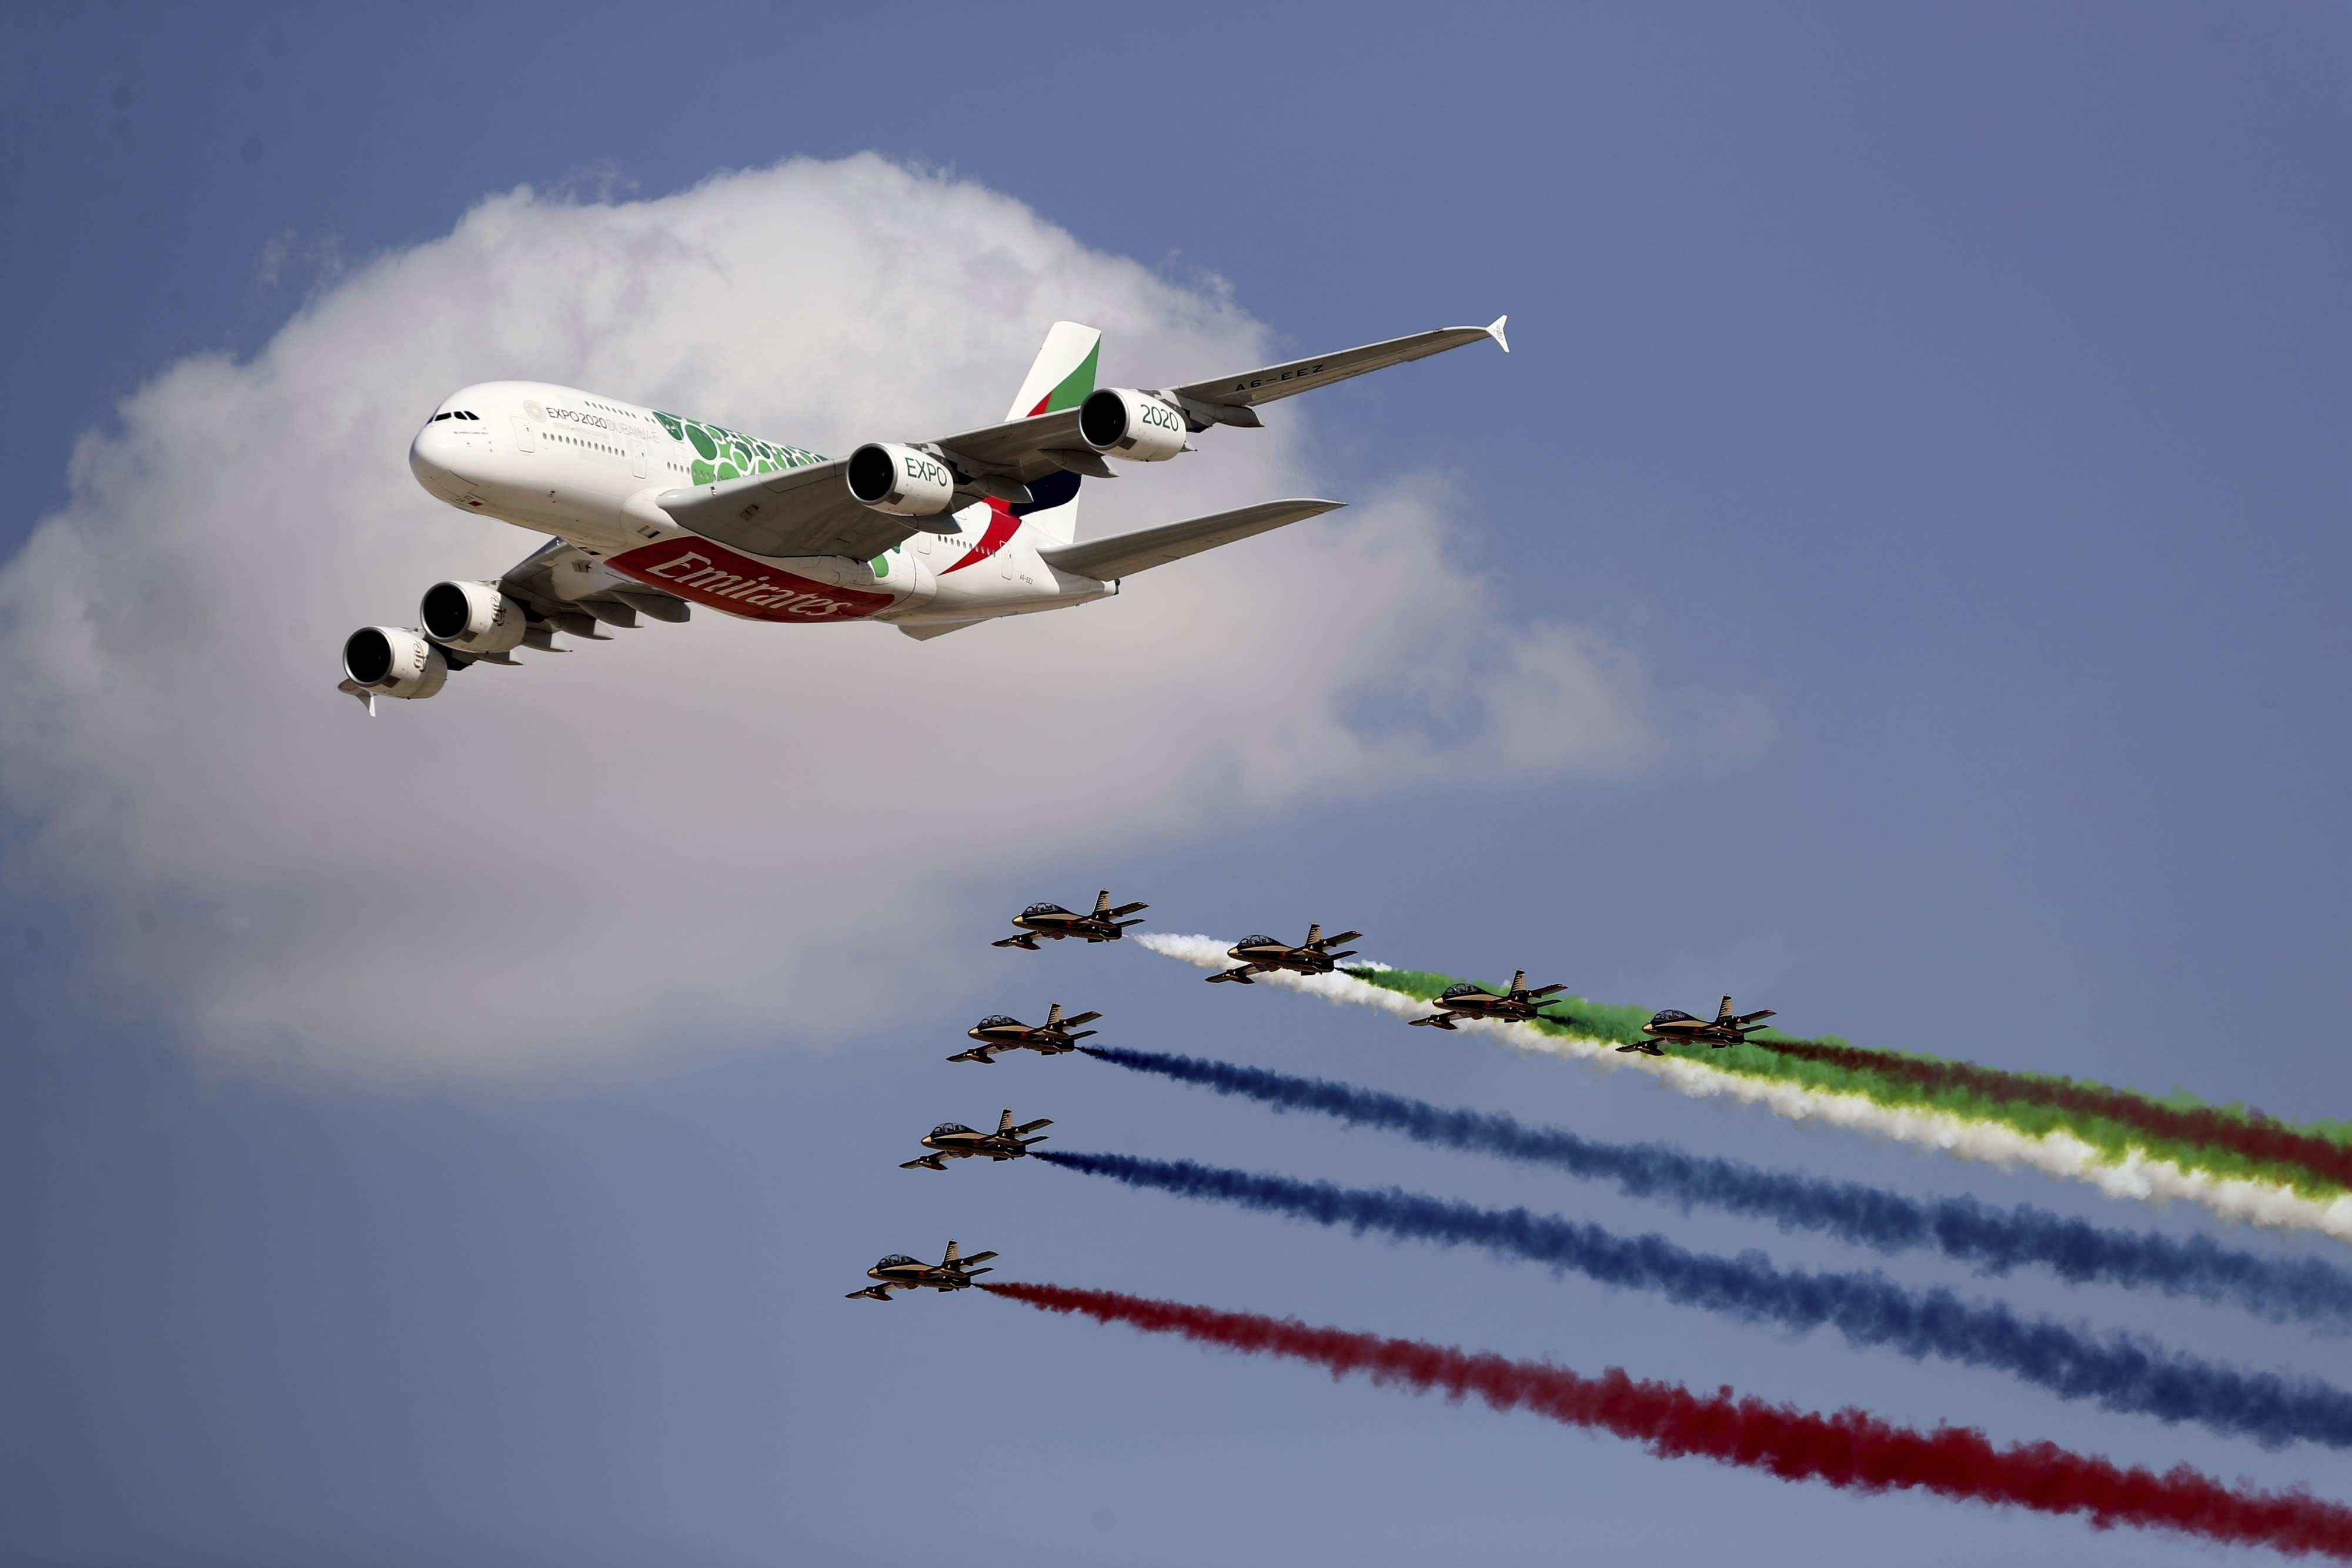 """FILE - In this Nov. 17, 2019 file photo, an Emirates Airline A-380 leads the """"Al Fursan,"""" or the Knights, UAE air force aerobatic display team during the opening day of the Dubai Airshow, in Dubai, United Arab Emirates. On Sunday, March 22, 2020, long-haul carrier Emirates said it would suspend all passenger flights beginning Wednesday, March 25, 2020, over the effects of the coronavirus pandemic. (AP Photo/Kamran Jebreili, File)"""